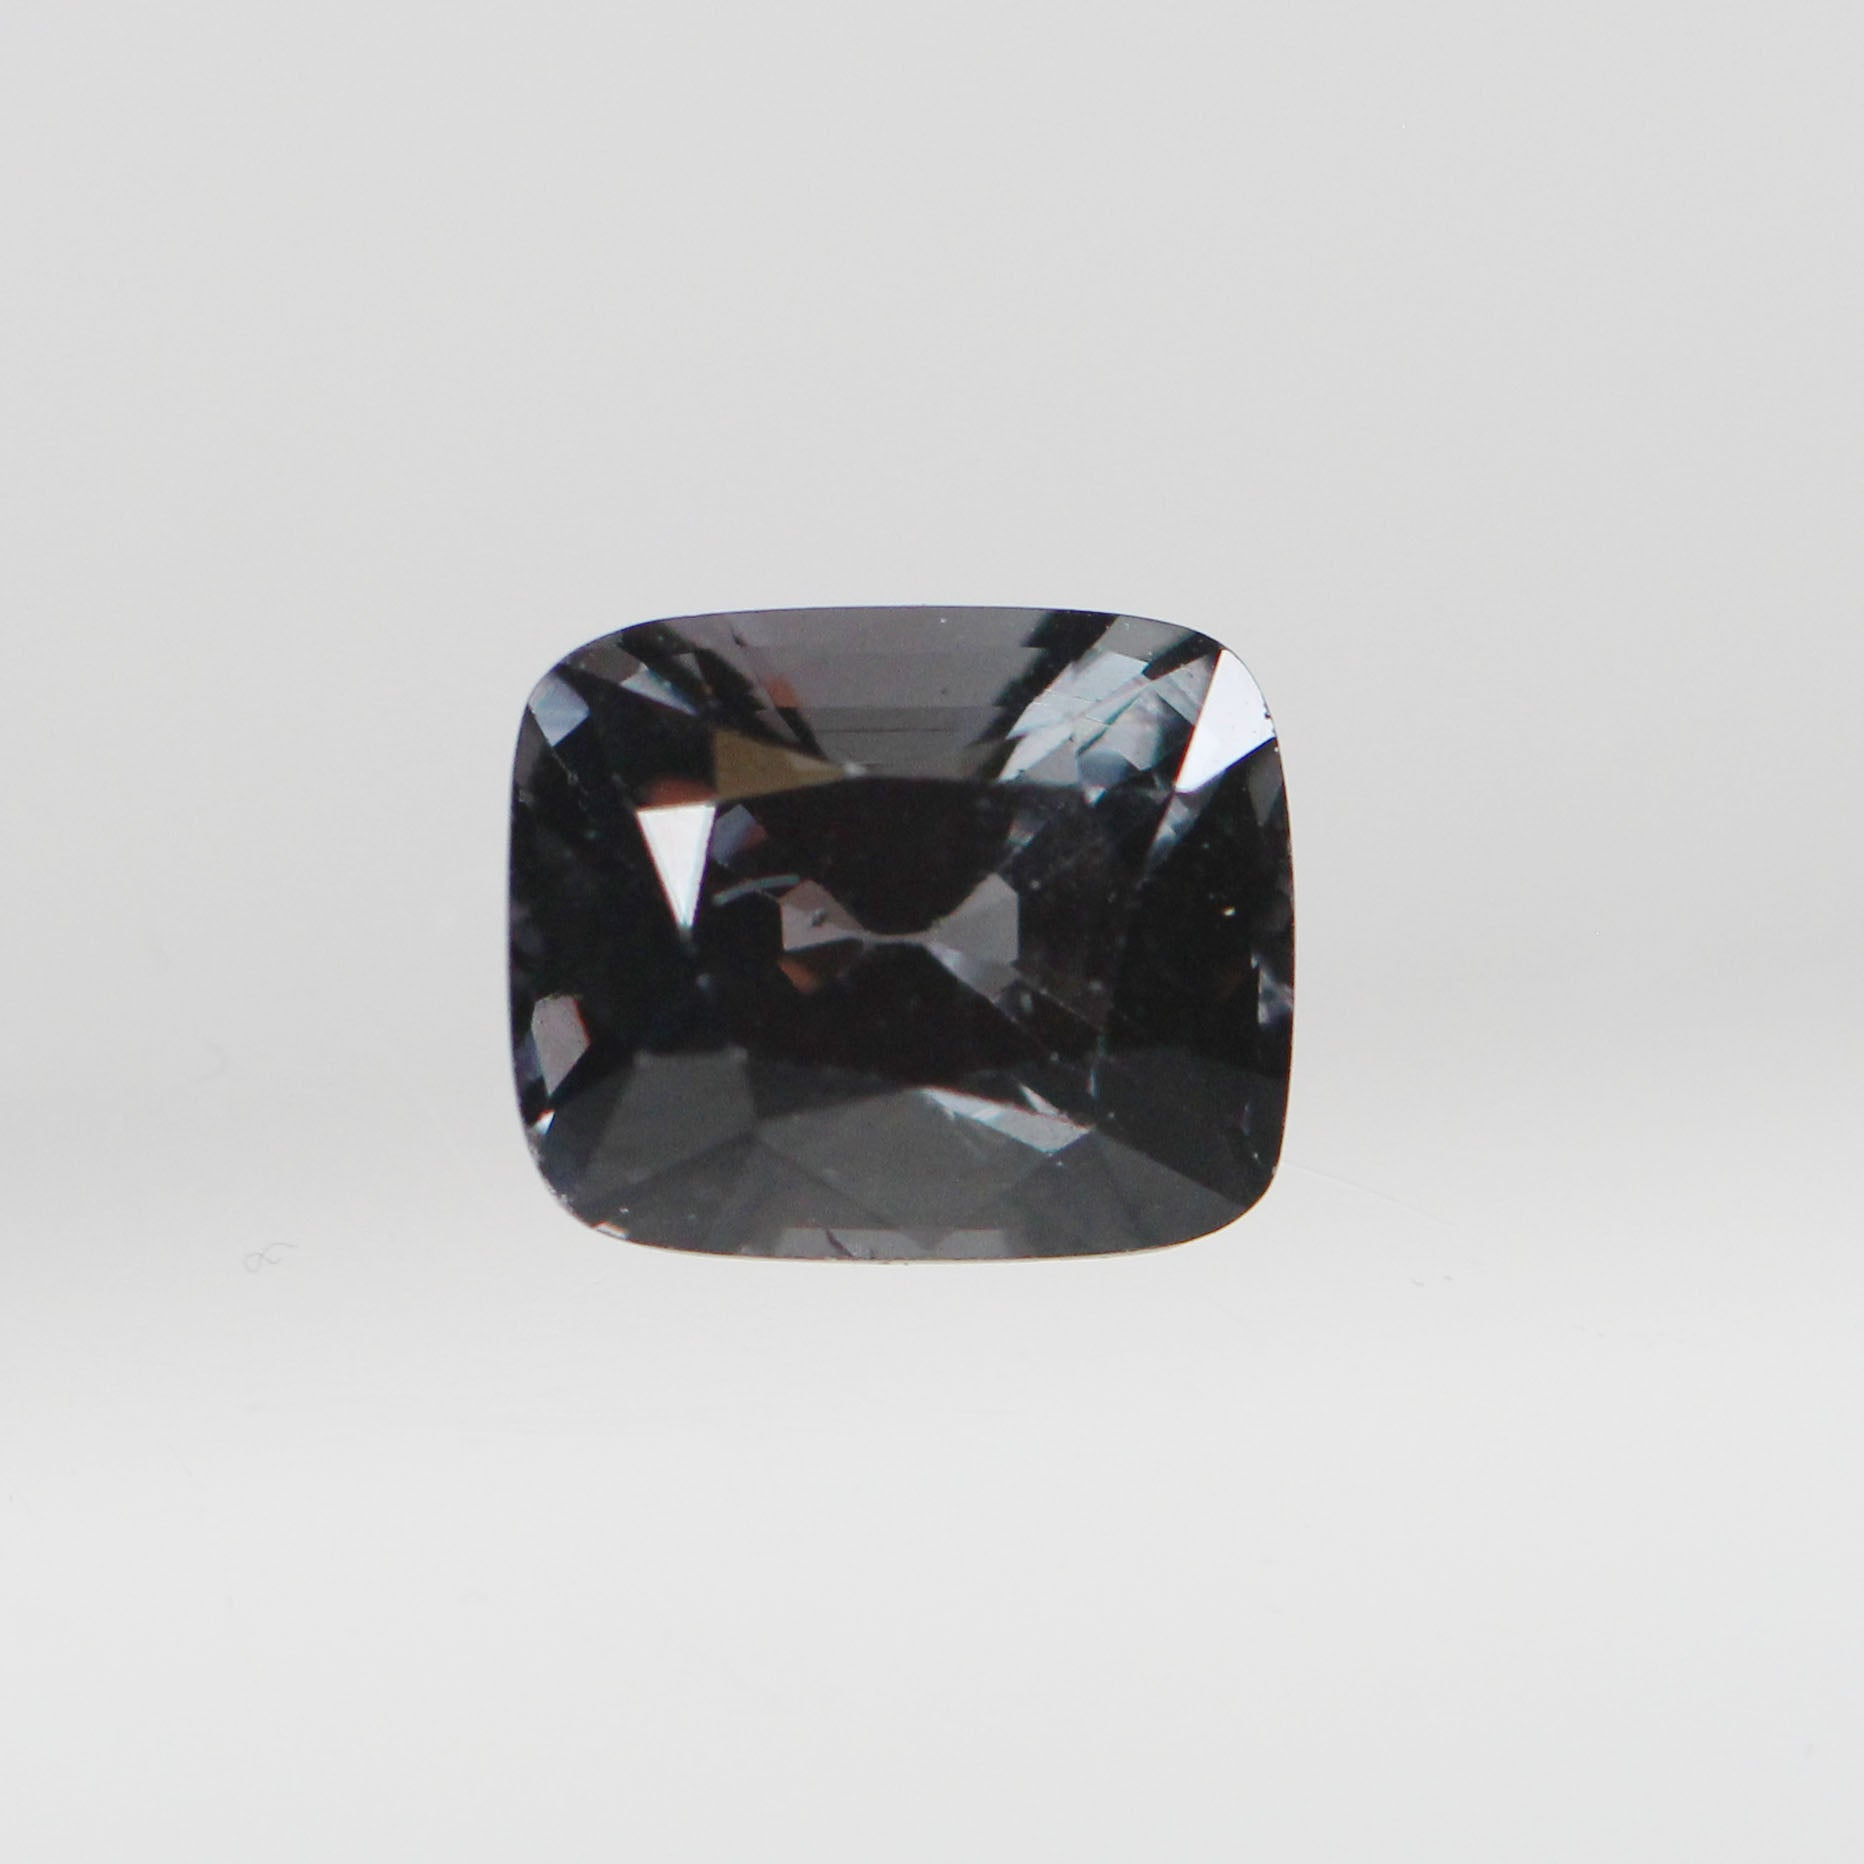 1.92 Carat Cushion Spinel for Custom Work - Inventory Code CBSP192 - Celestial Diamonds ® by Midwinter Co.